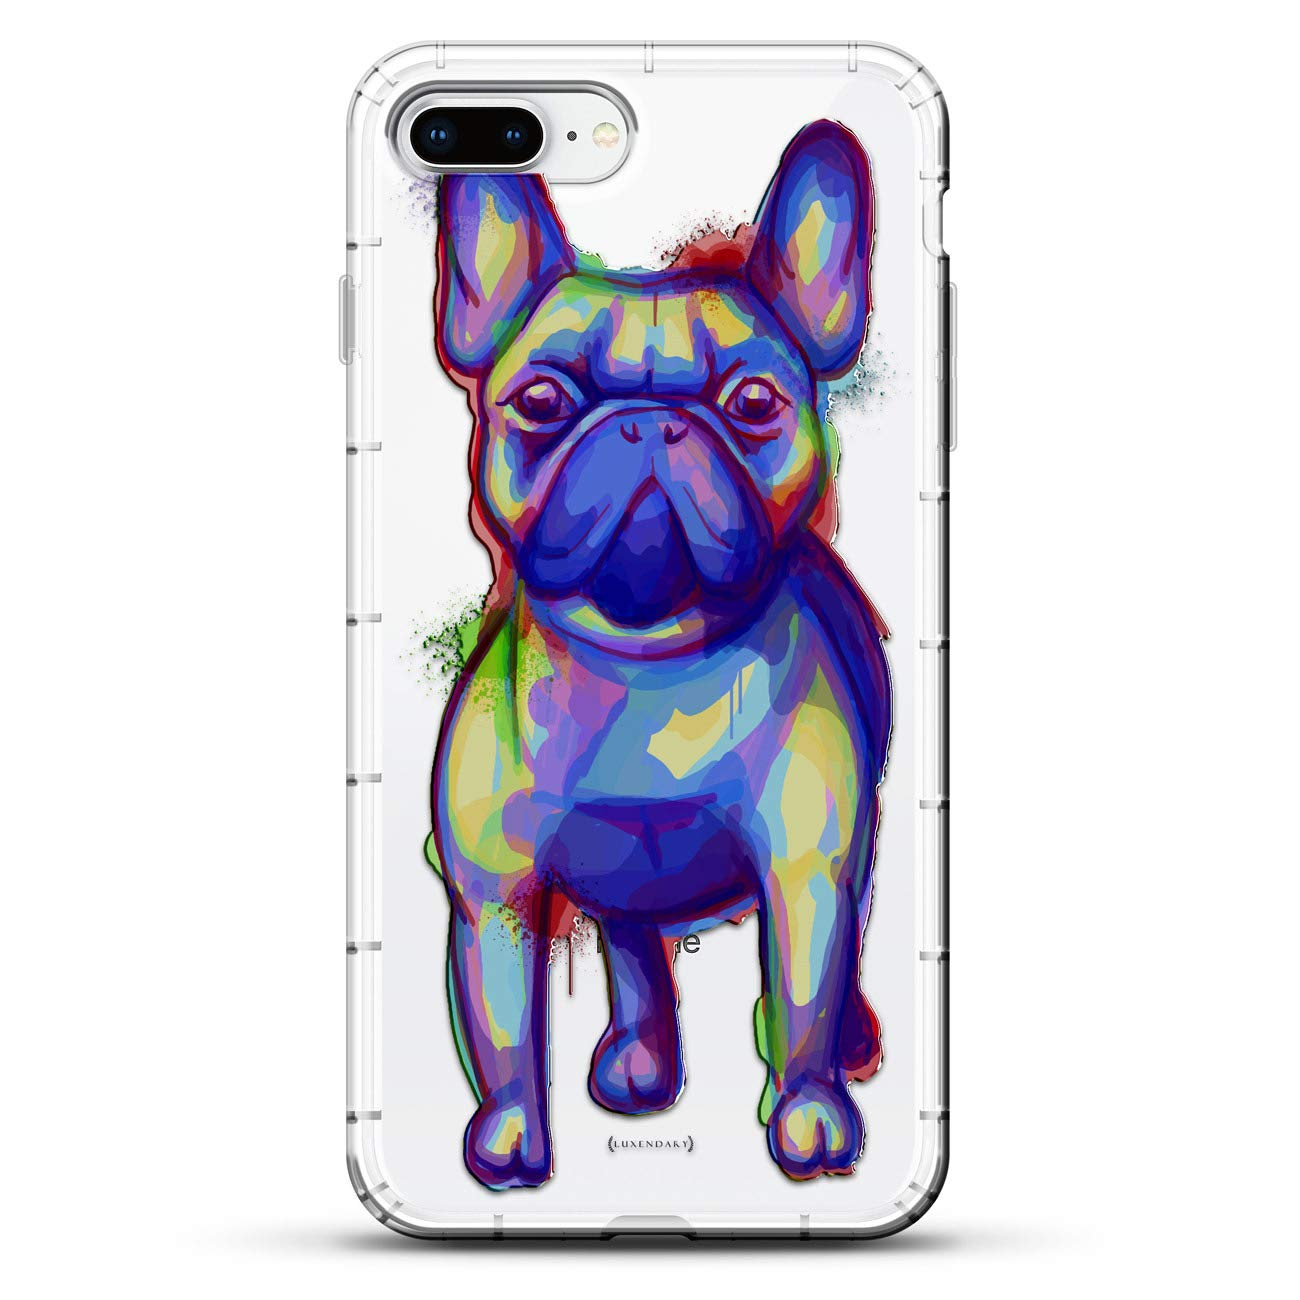 ANIMALS: Trippy Dog Design   Luxendary Air Series Clear Silicone Case with  3D Printed Design and Air-Pocket Cushion Bumper for iPhone 8/7 Plus